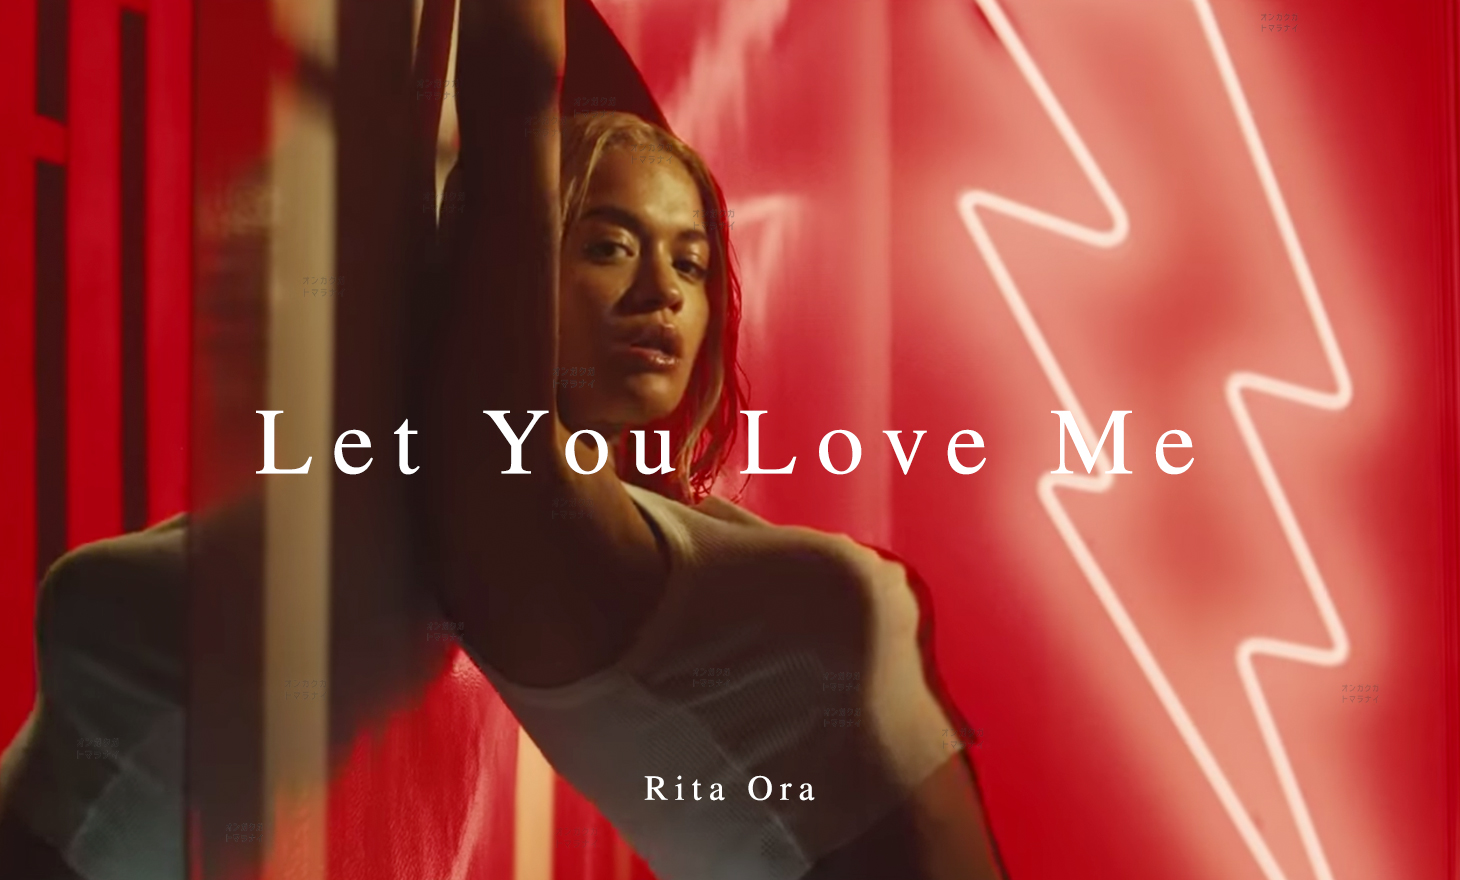 Rita Ora : Let You Love Me